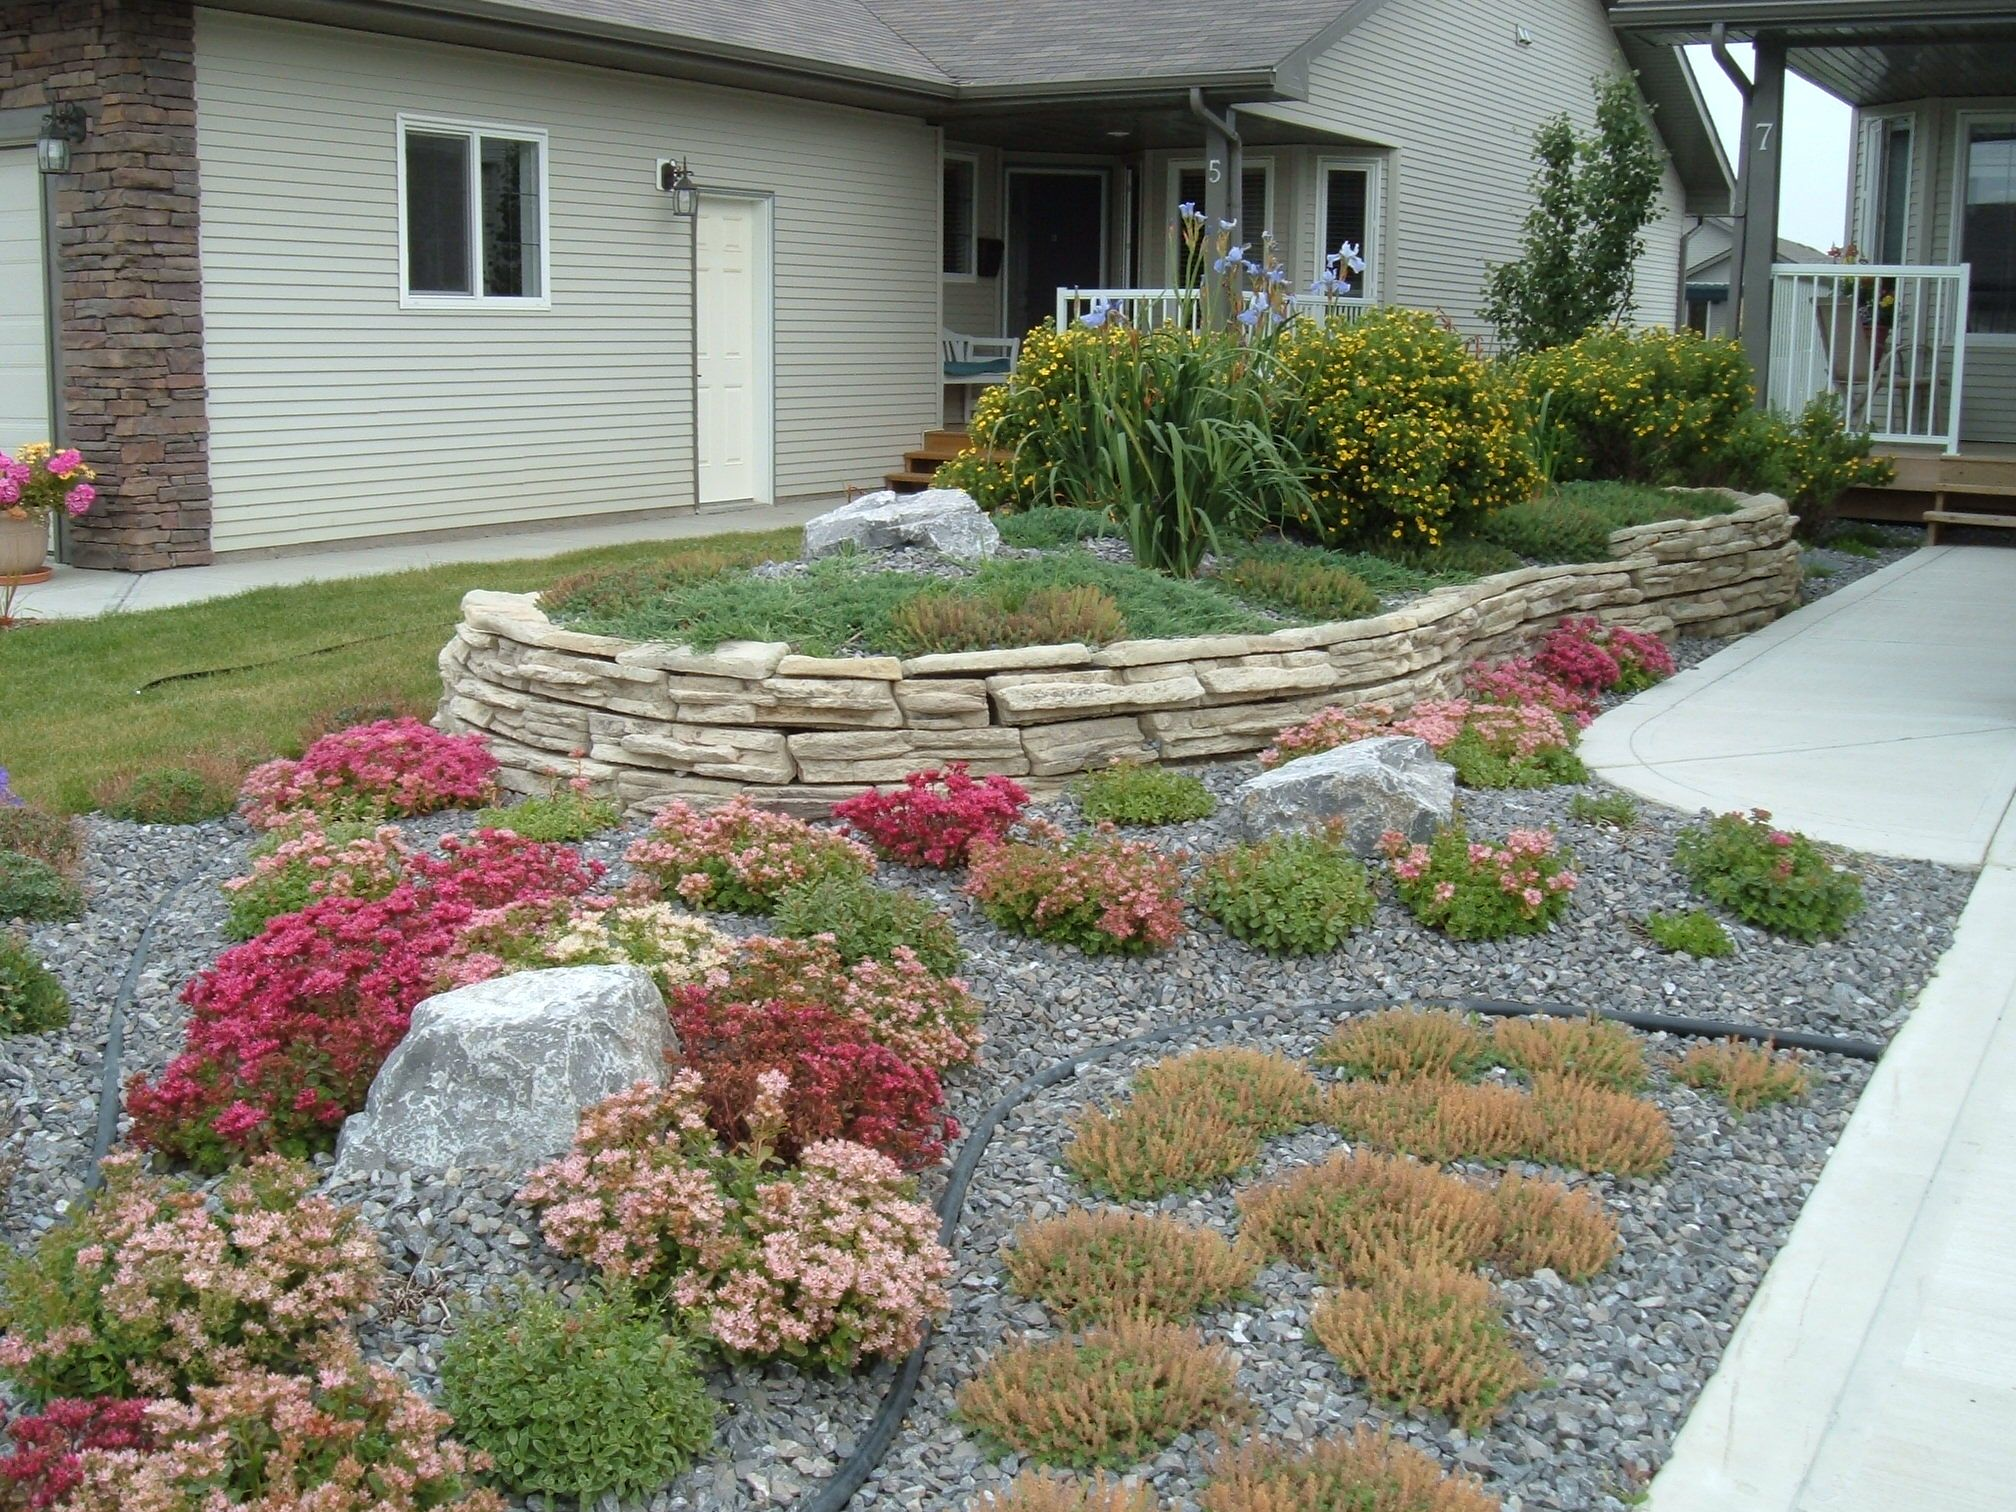 Minimal maintenance landscaping a no lawn front yard with for No maintenance flowering shrubs